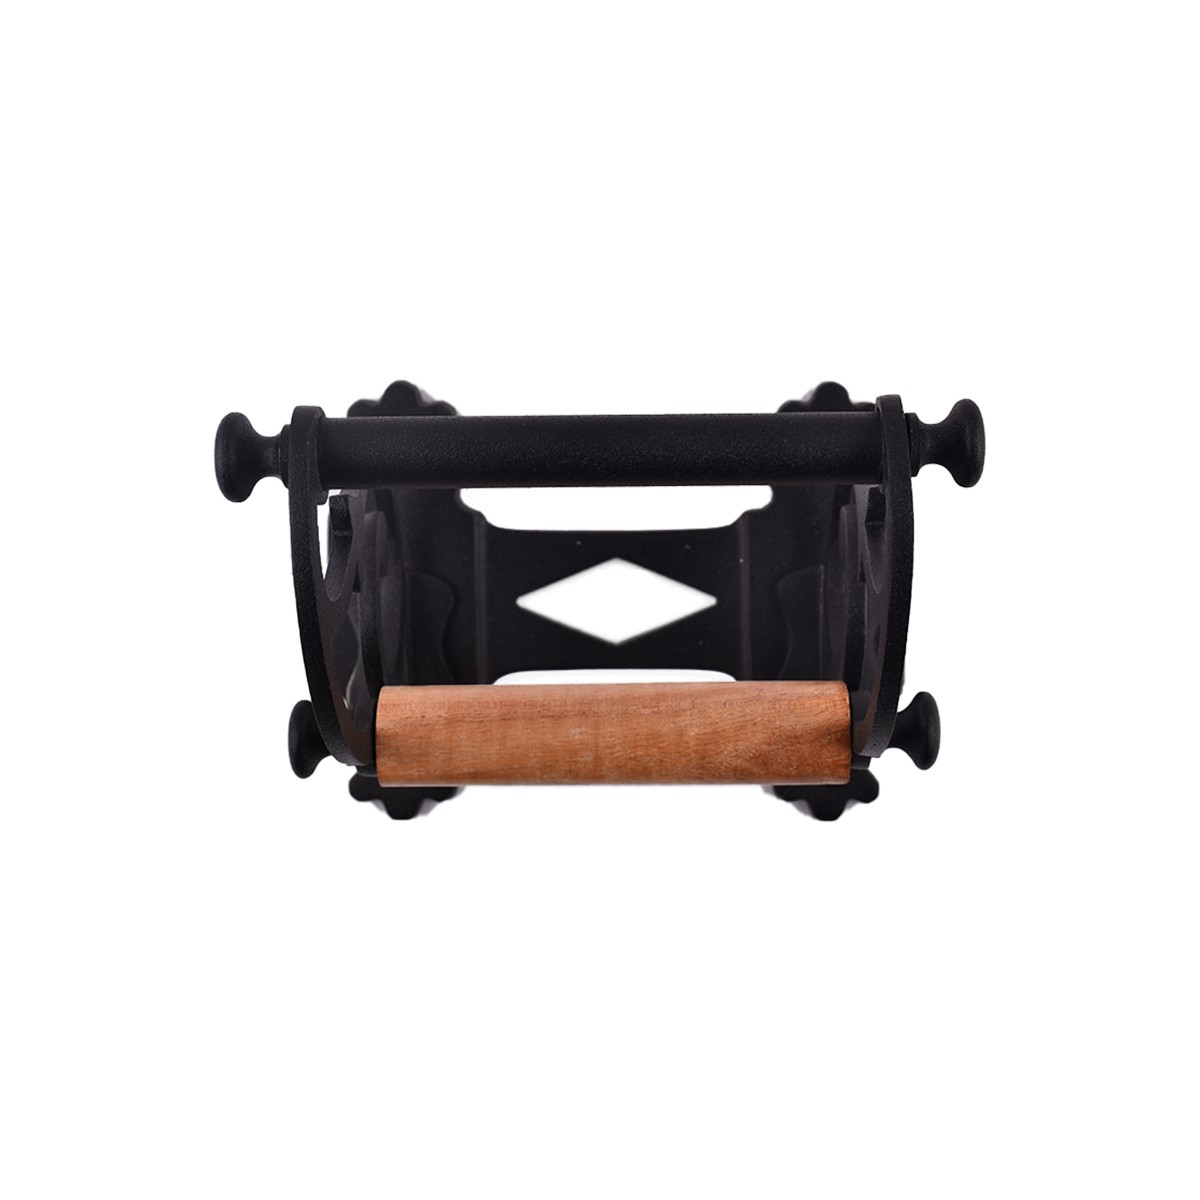 Victorian Toilet Paper Black Aluminuim Tissue Holder Black Toilet Paper Holder Brass Toilet Paper Holder Tissue Holder For Bathroom